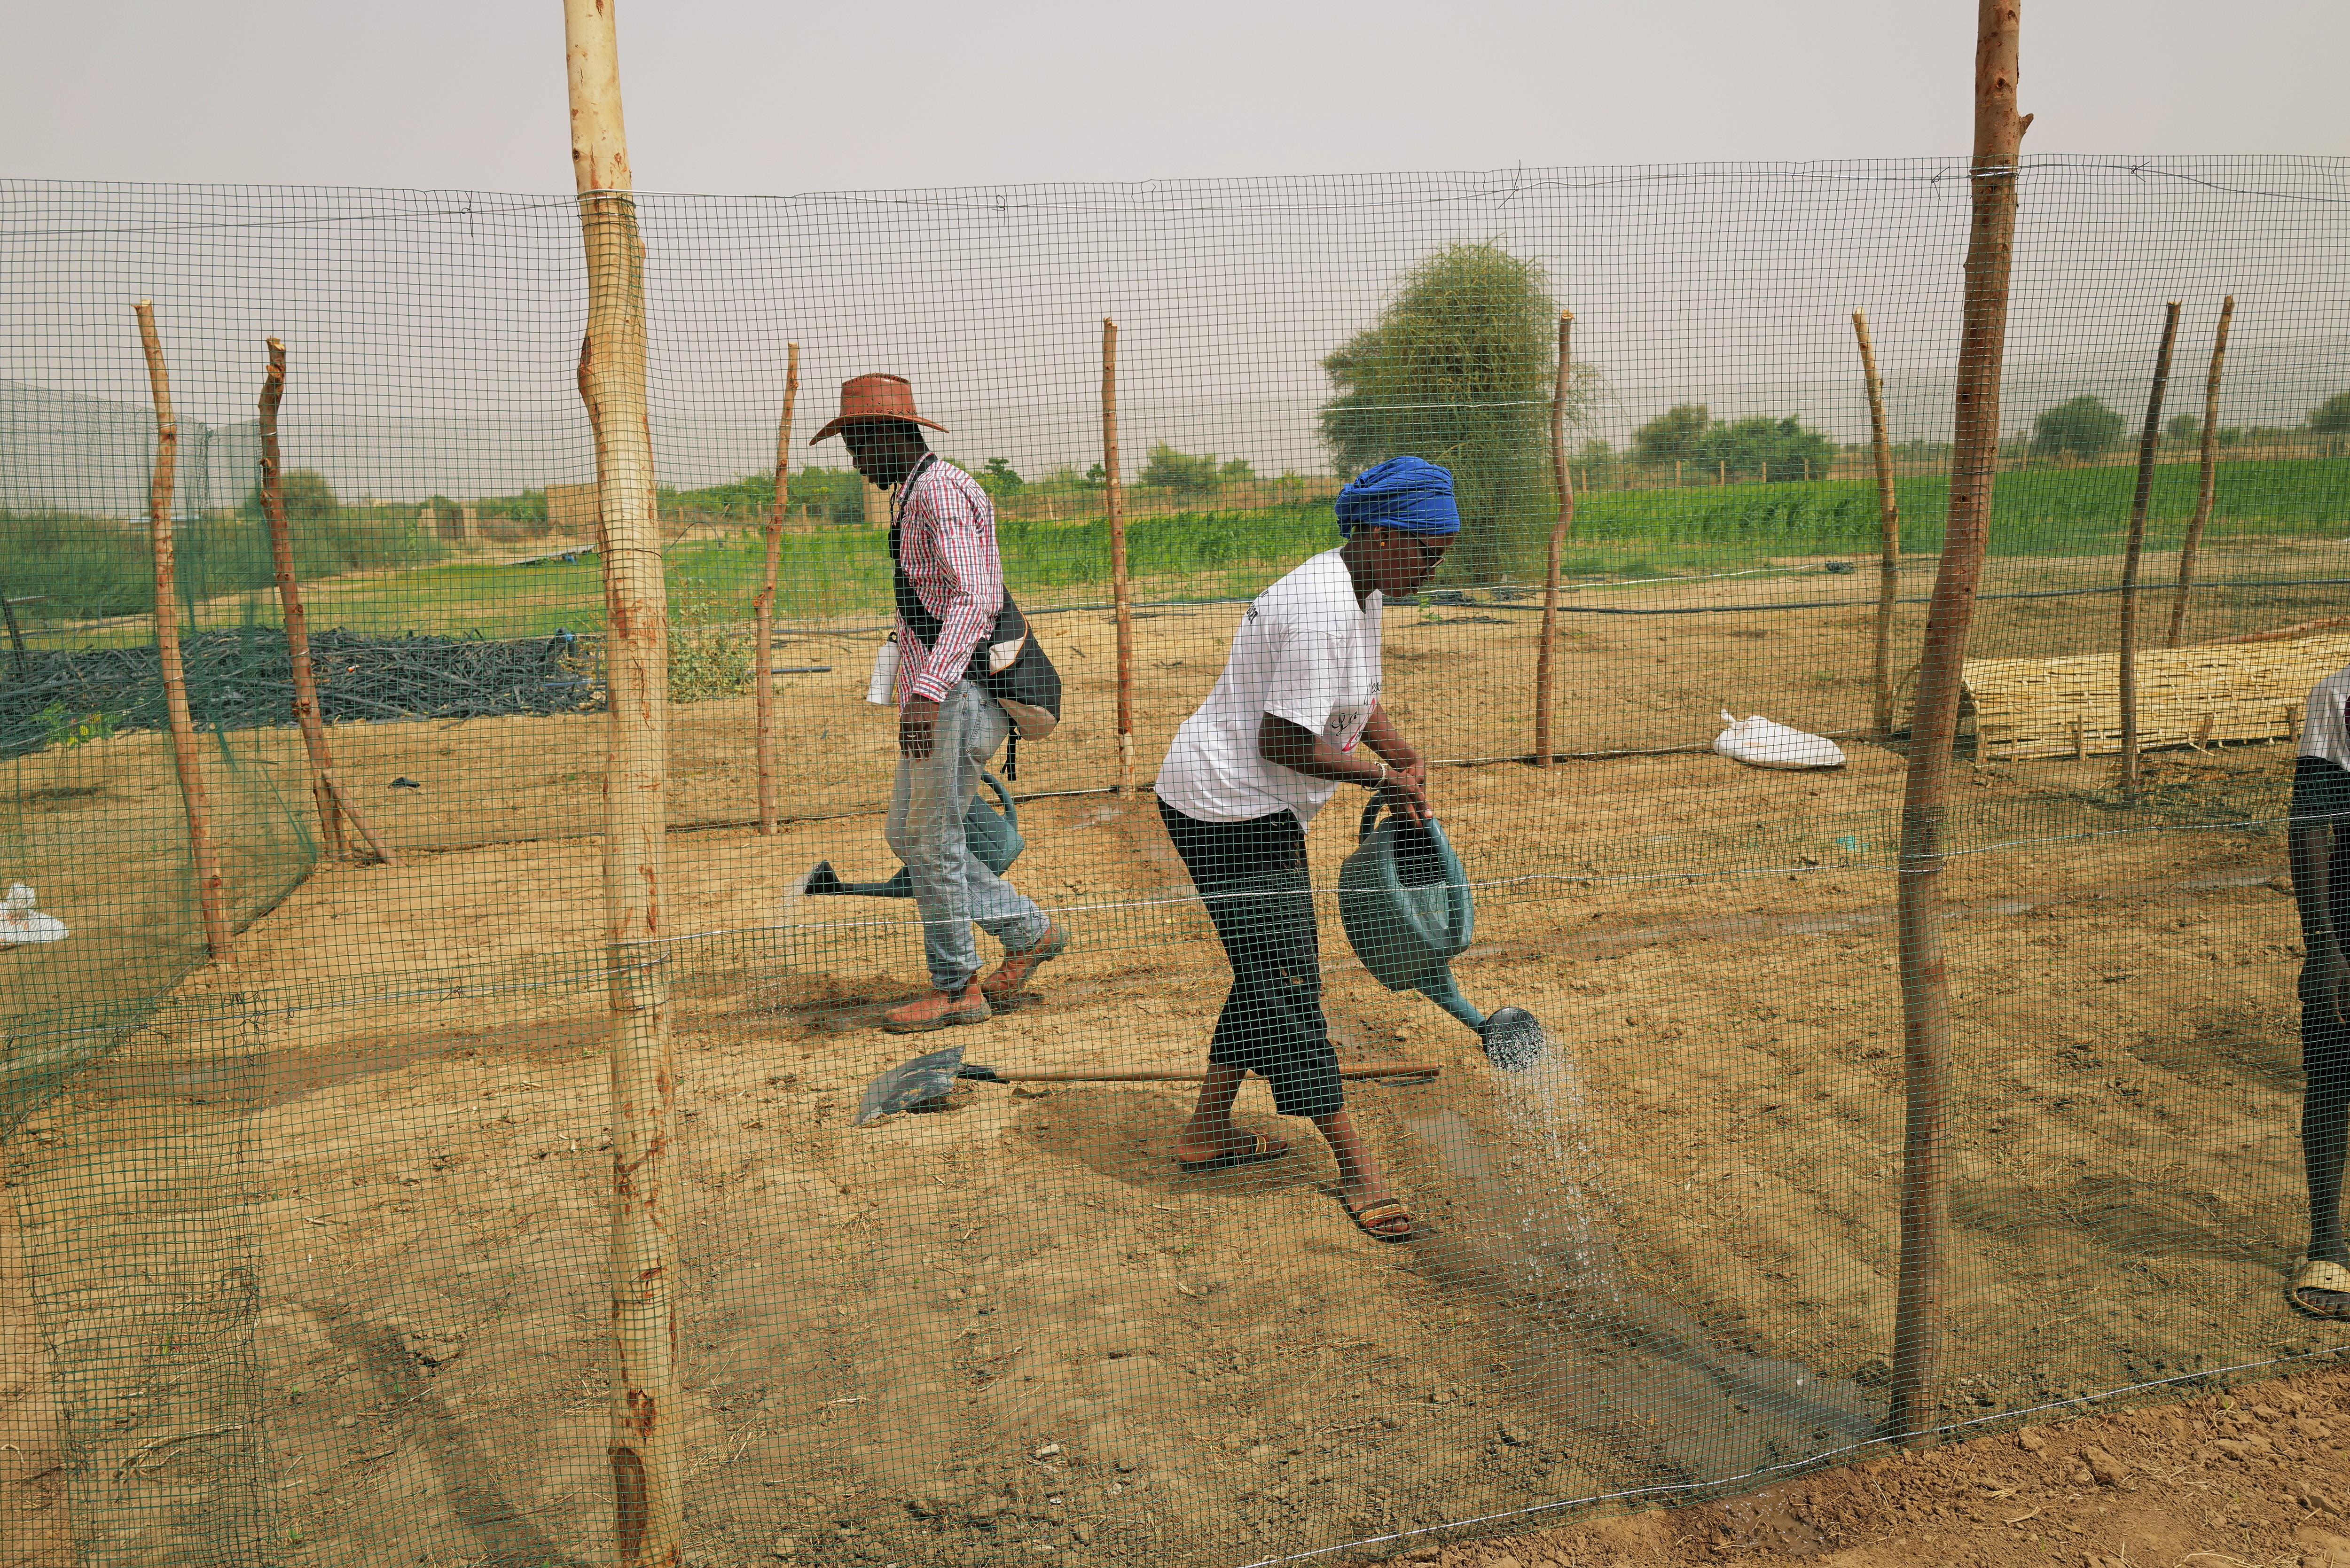 """Amadou Bathili, 50, a trainer who teaches how to build Tolou Keur gardens through the Tolou Keur programme, prepares a chicken cage at a newly built Tolou Keur garden in Boki Diawe department of Podor region, in an area which is part of the Great Green Wall of the Sahara and the Sahel area, in Senegal, July 10, 2021. Gardens known as 'Tolou Keur' hold plants and trees resistant to hot, dry climates, and are planted with circular beds that allow roots to grow inwards, trapping liquids and bacteria and improving water retention and composting. REUTERS/Zohra Bensemra     SEARCH """"BENSEMRA REFORESTATION"""" FOR THIS STORY. SEARCH """"WIDER IMAGE"""" FOR ALL STORIES - RC2MHO93W3NP"""